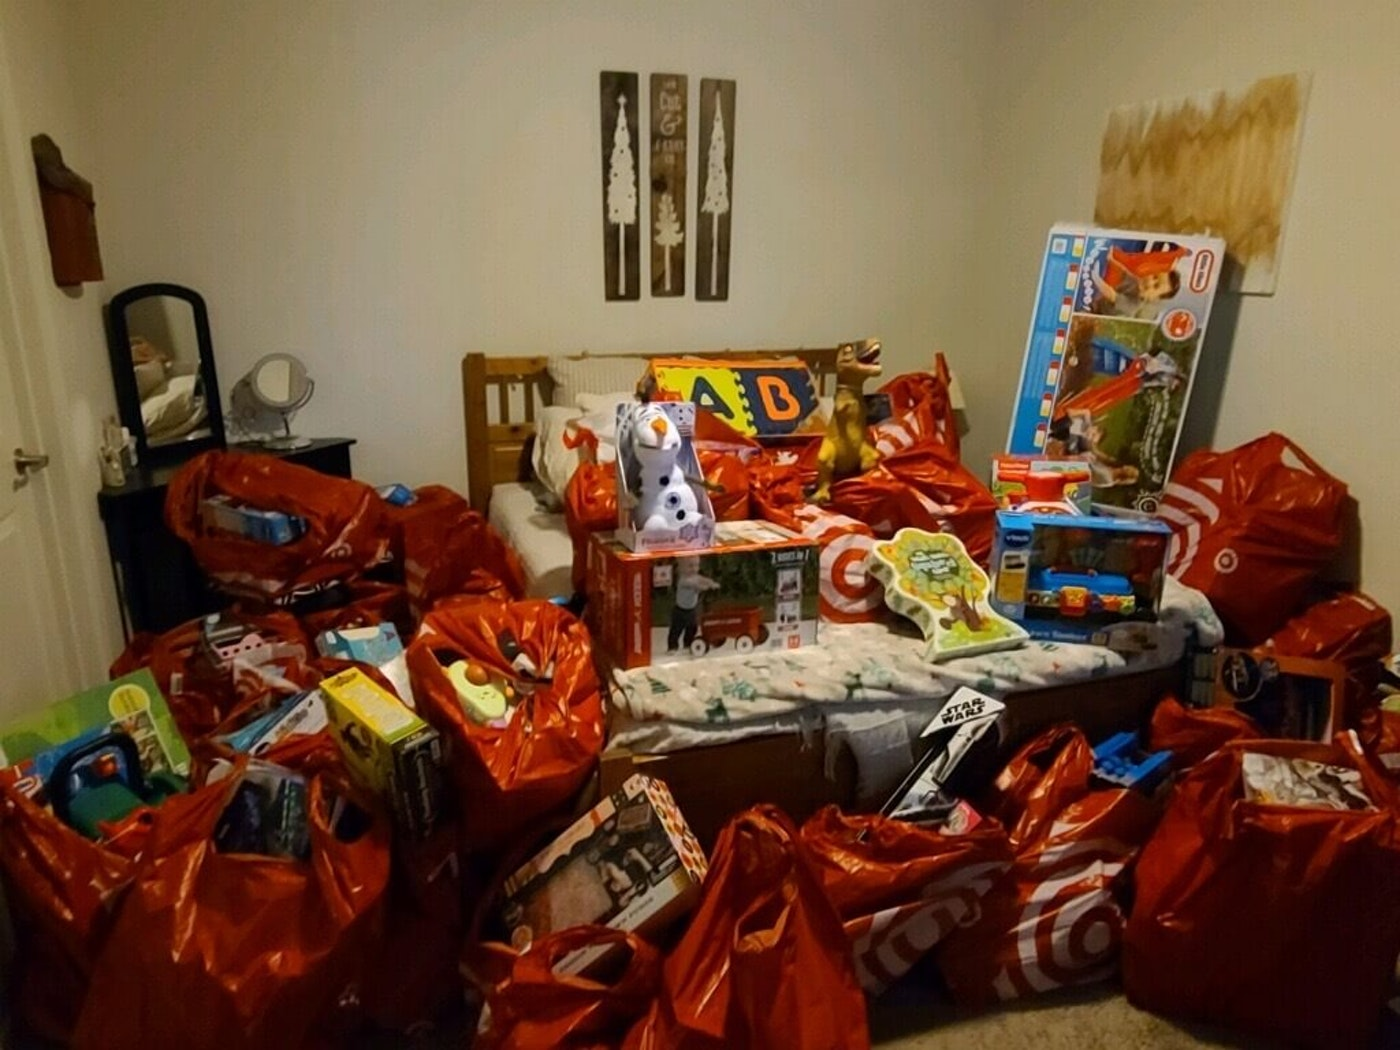 Small room filled with bags of gift donations